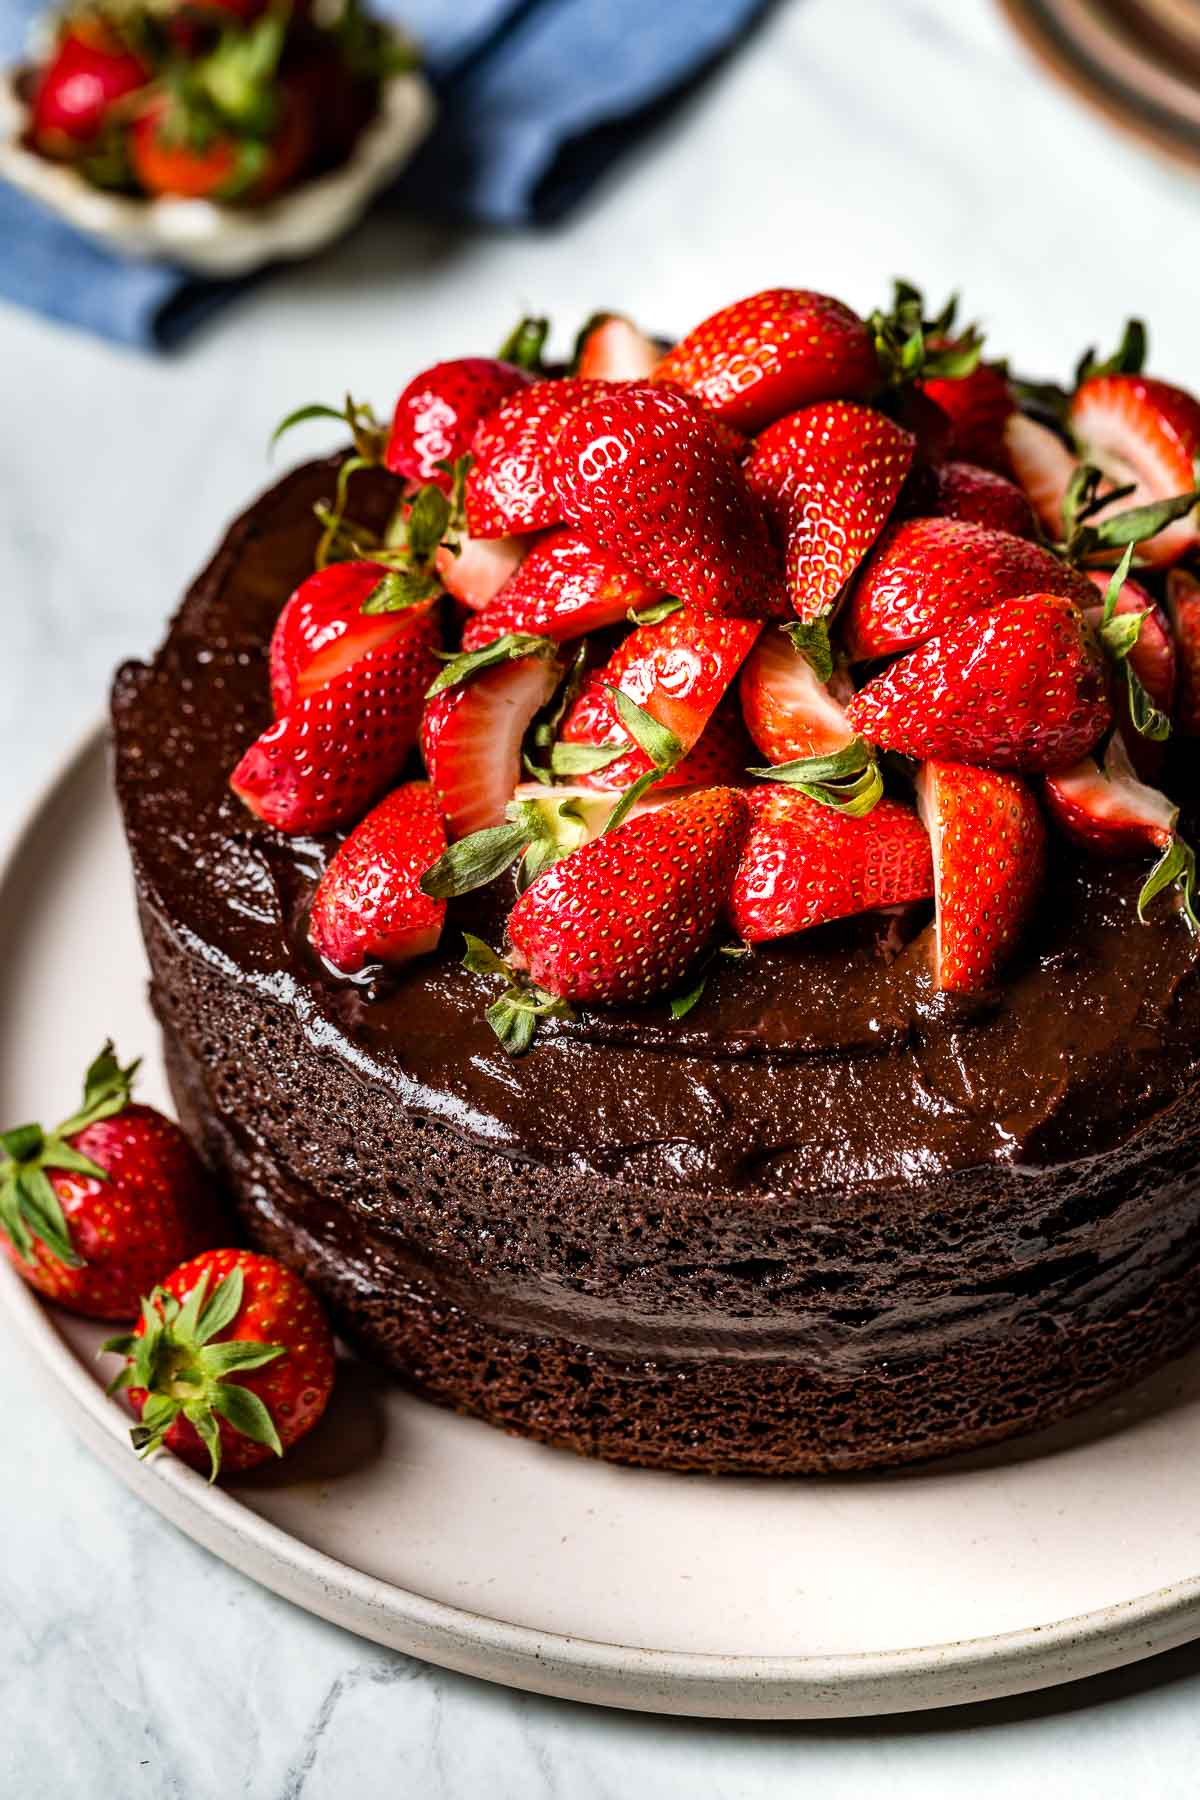 Almond Flour Chocolate Cake topped off with strawberries on a plate